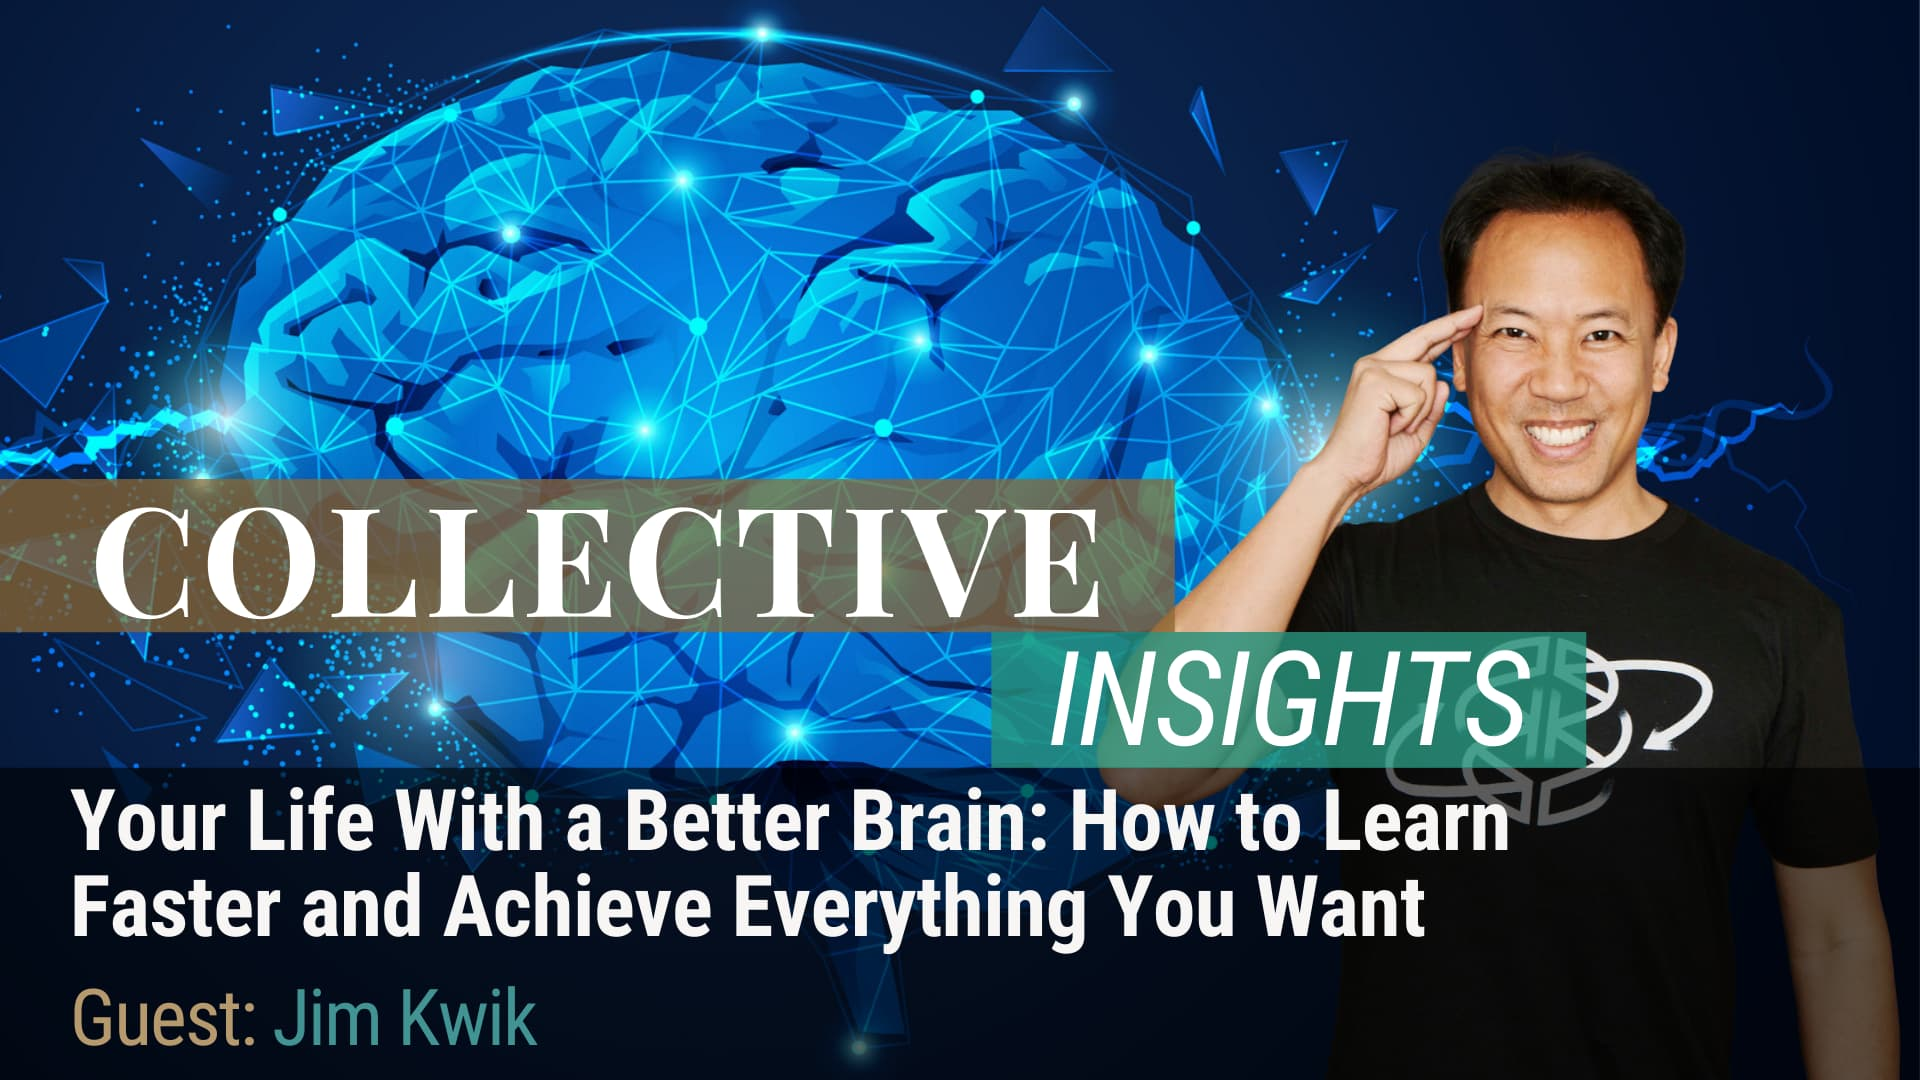 Your Life With a Better Brain: How to Learn Faster and Achieve Everything You Want